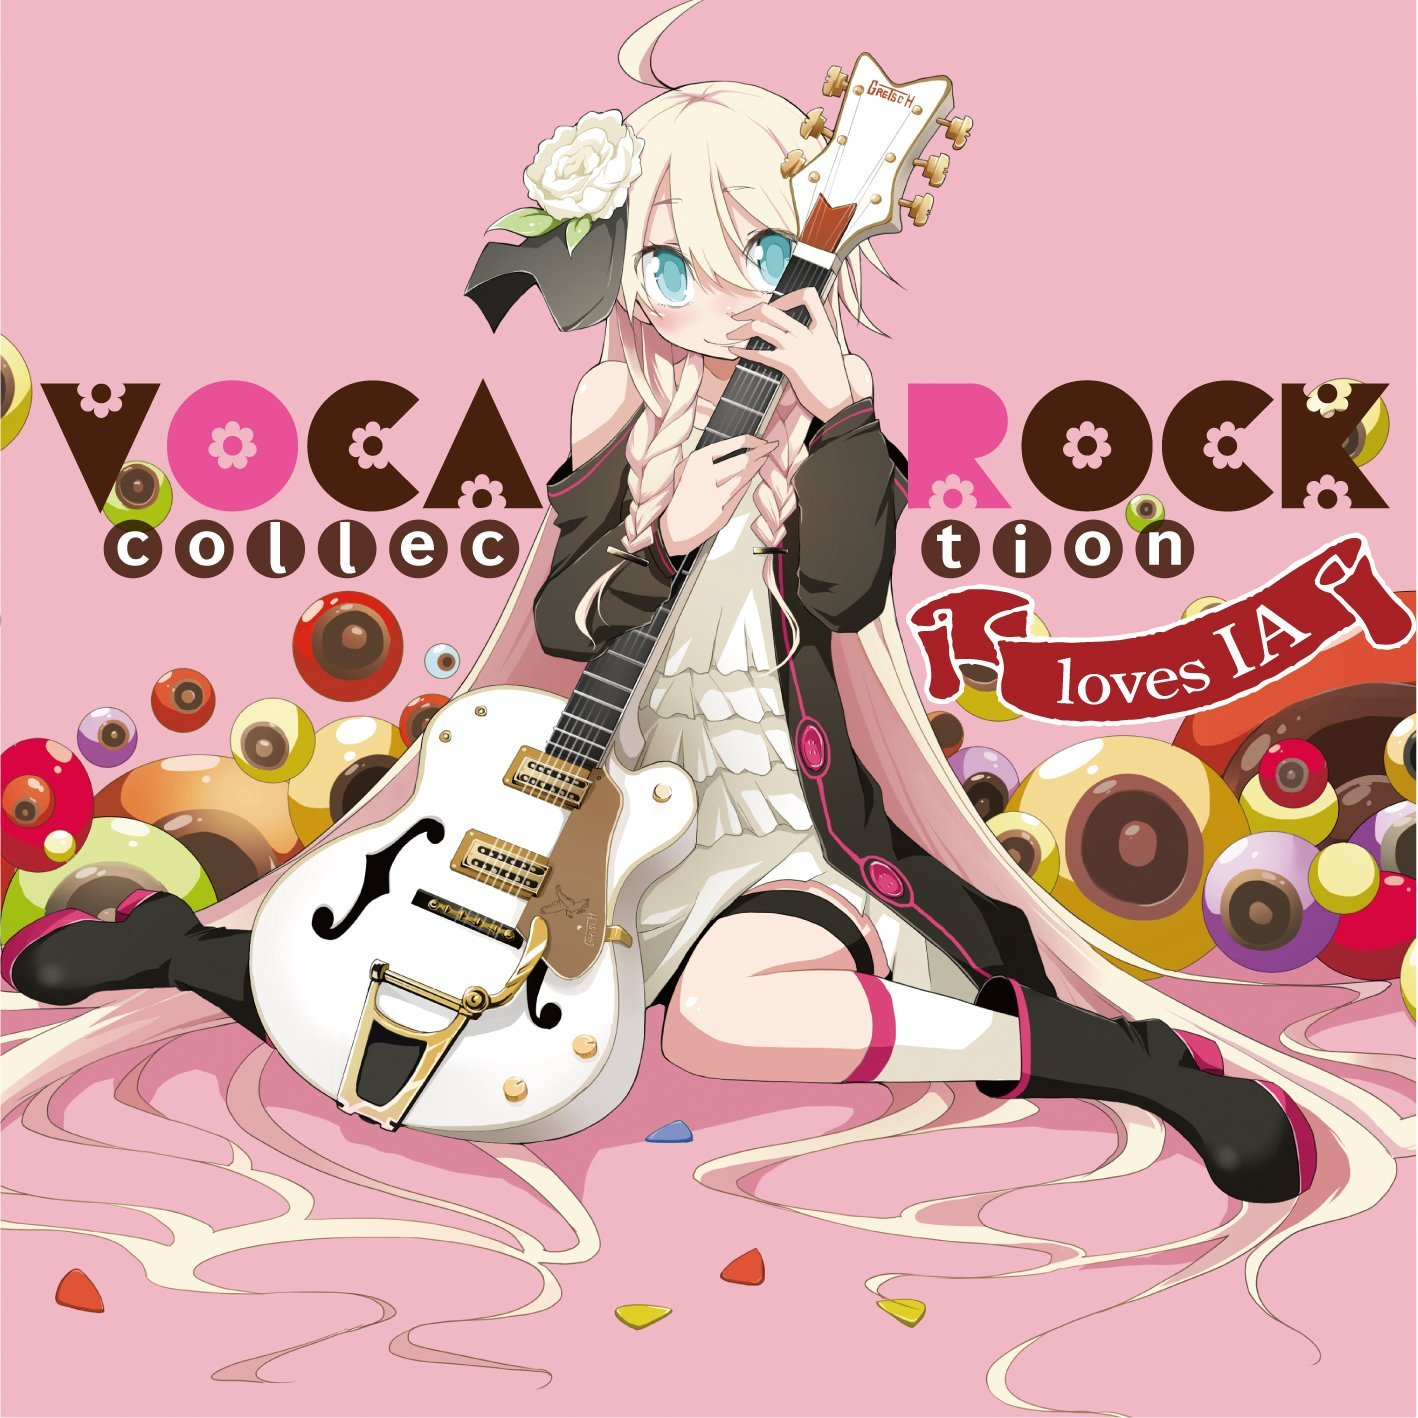 VOCAROCK collection loves IA